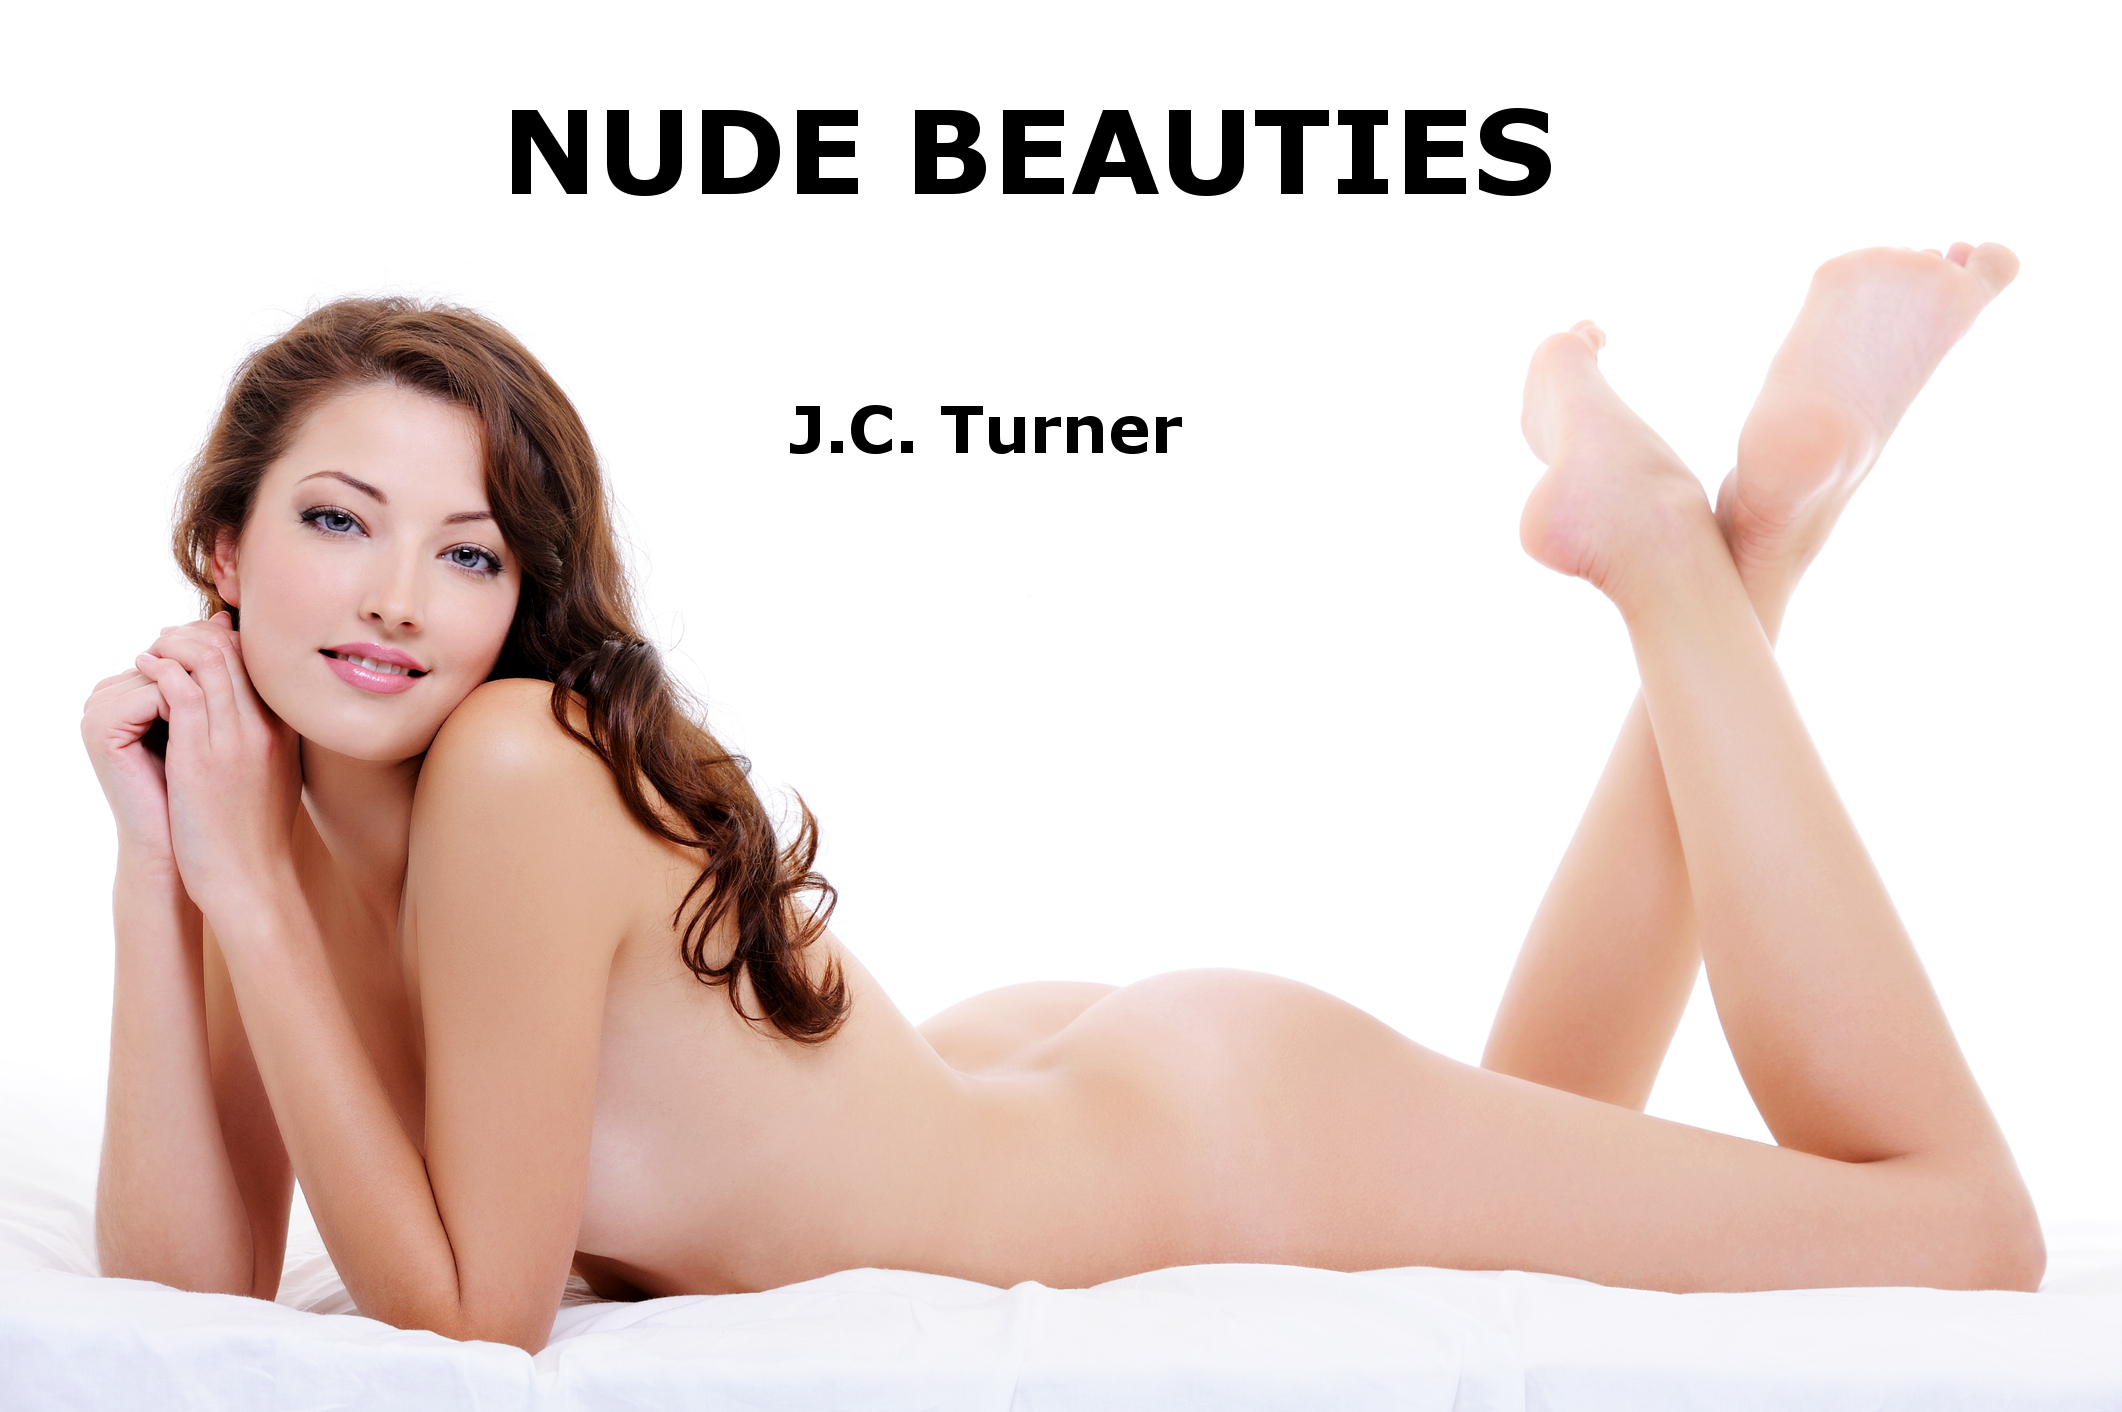 Nude Beauties